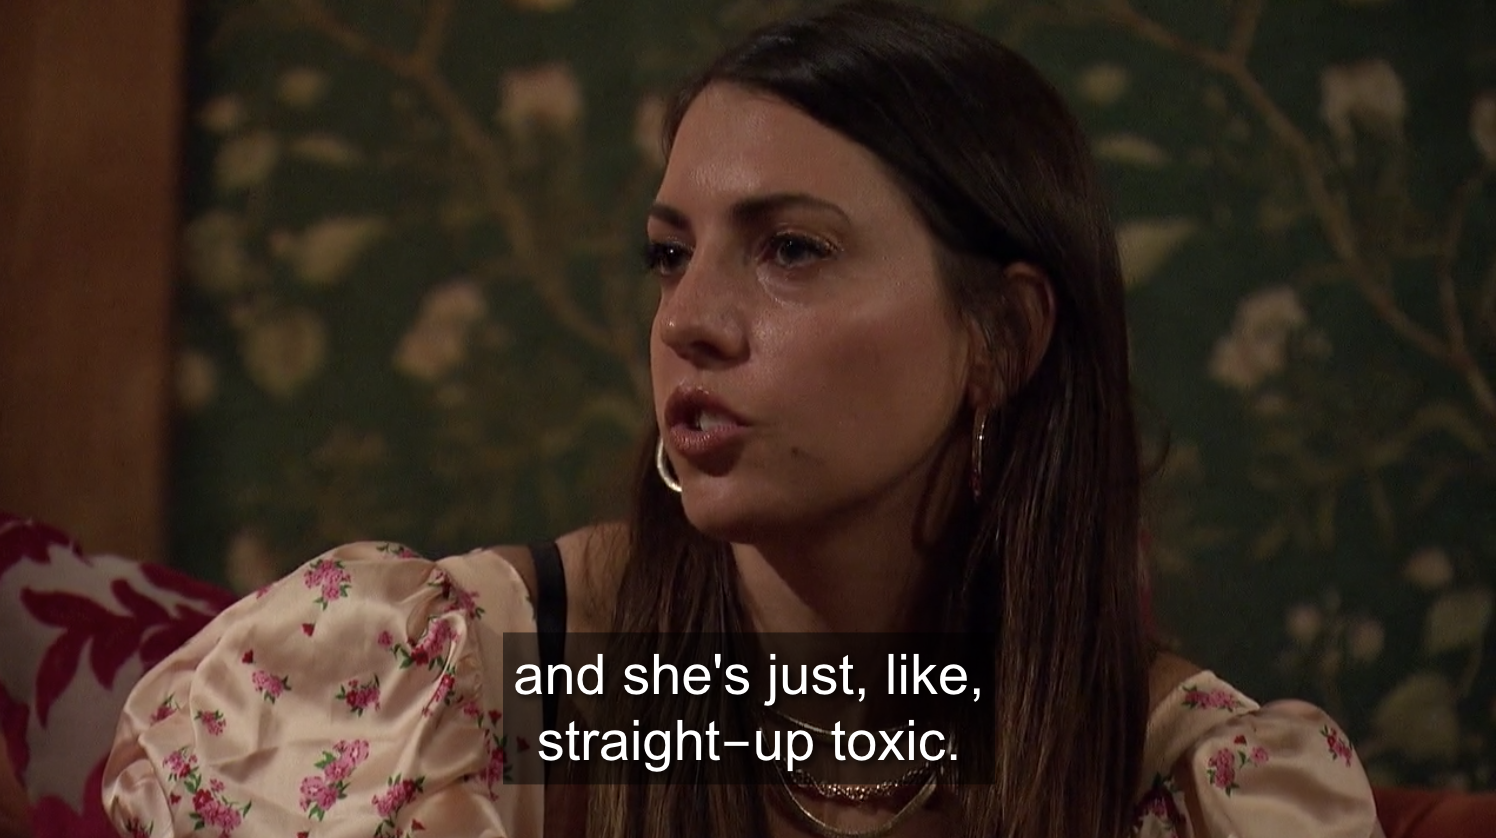 Victoria telling Matt that another girl in the house is toxic